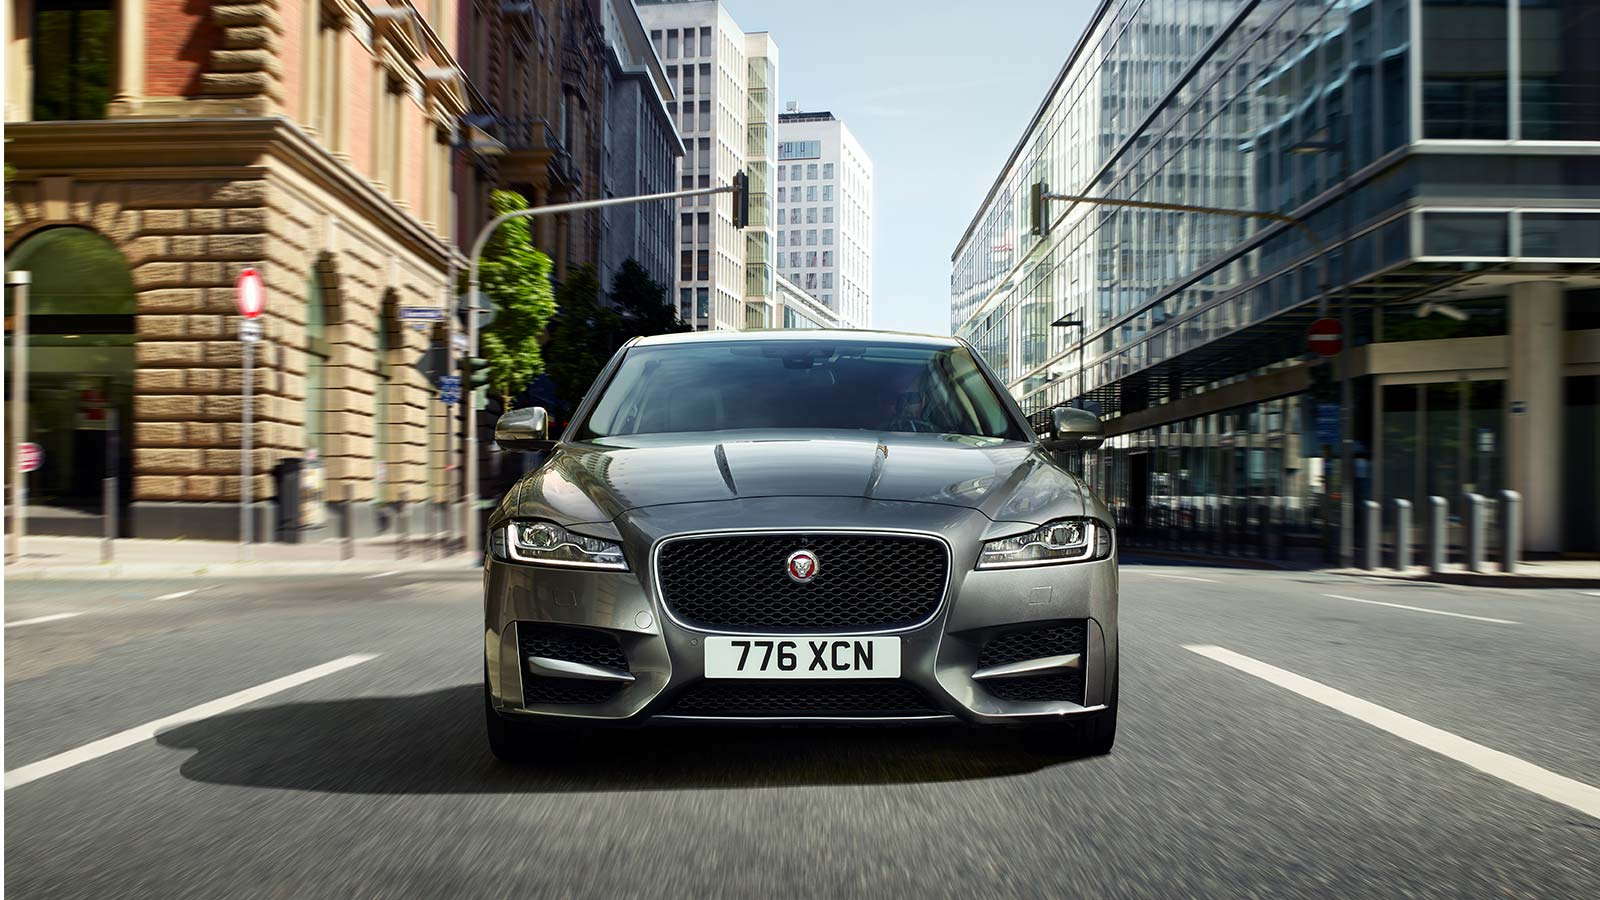 Front view of a Jaguar XF Driving on a road.